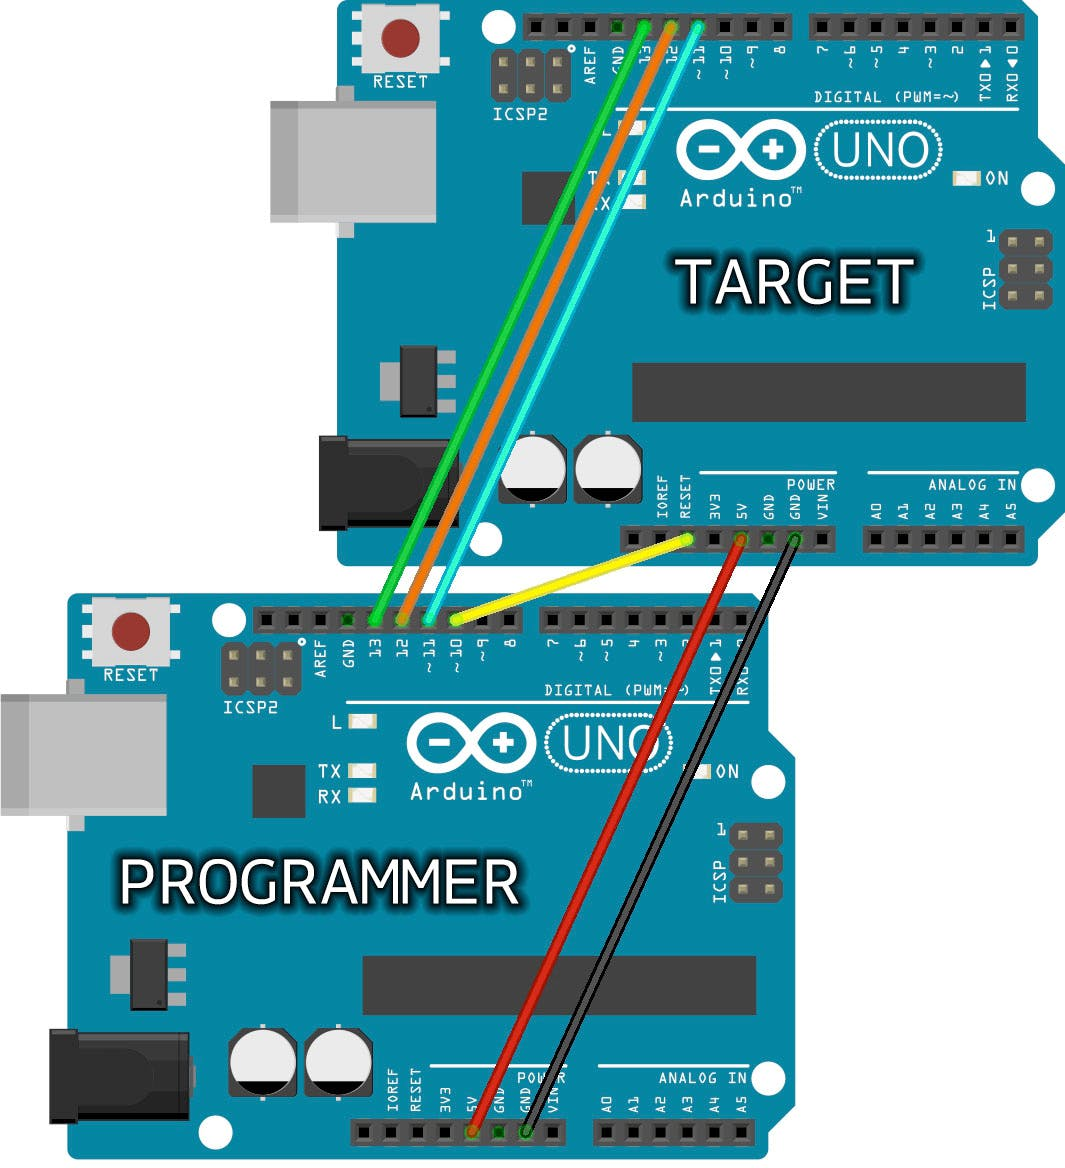 Using an Arduino UNO to burn the bootloader into another Arduino UNO,  (source:https://www.arduino.cc/en/uploads/Tutorial/ArduinoUNOtoUNO_ISP2.jpg)